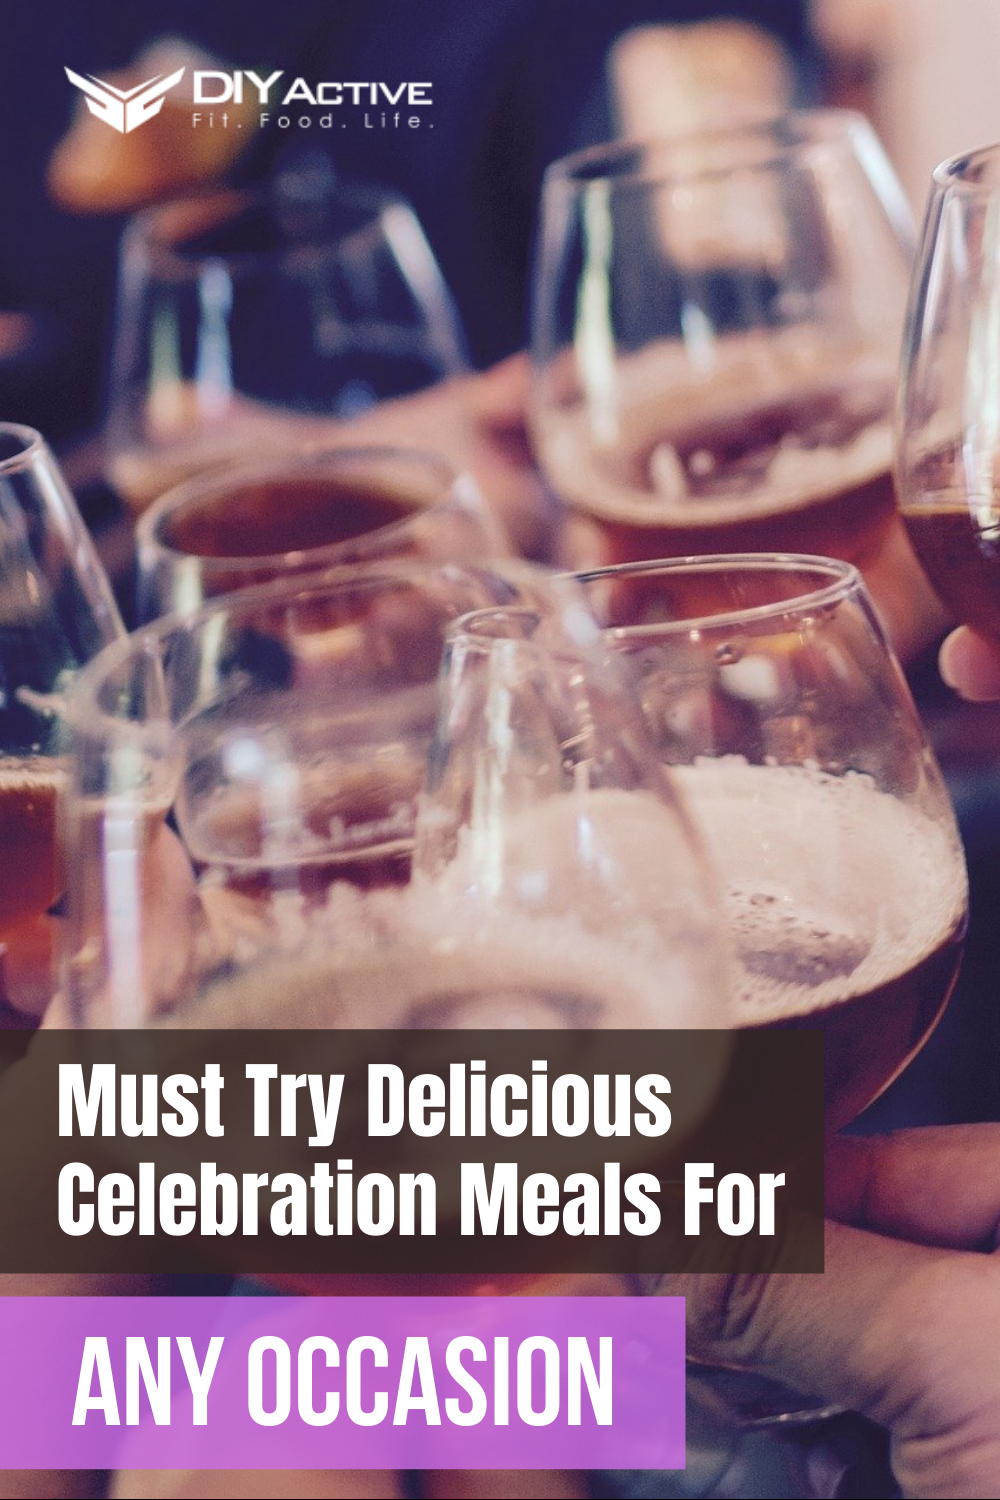 4 Delicious Celebration Meals for Any Occasion